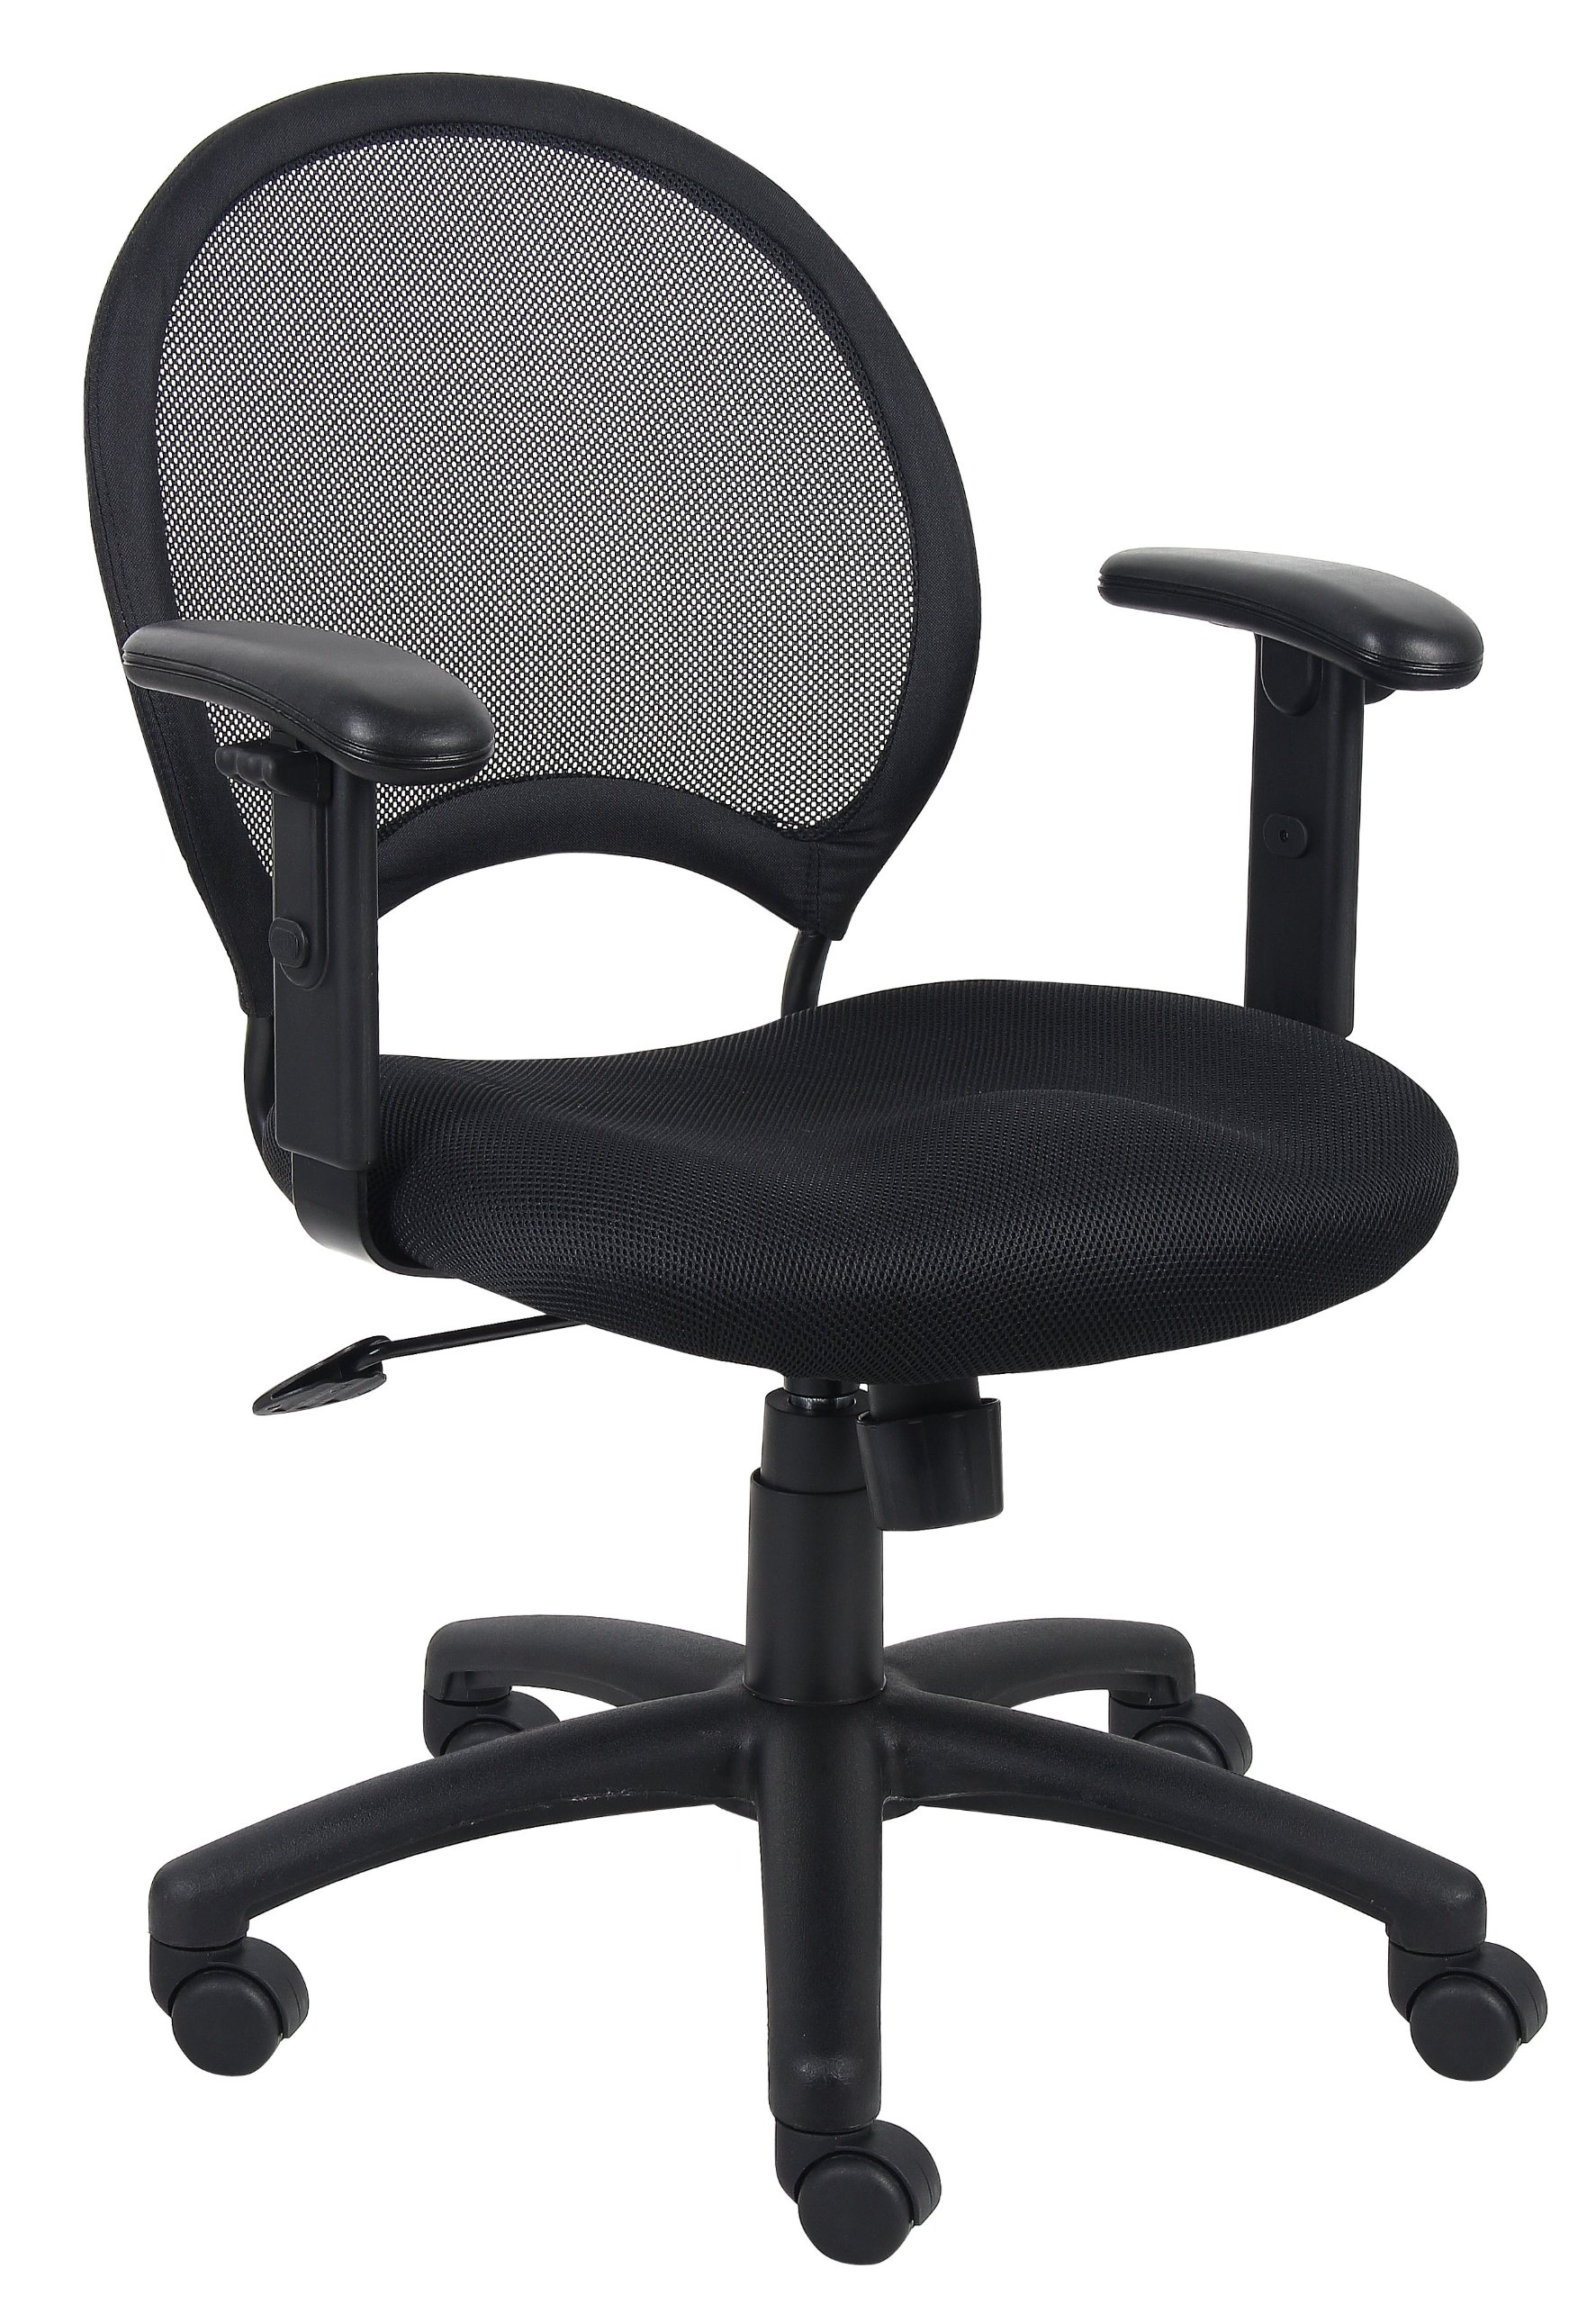 Boss Office Products B6216 Mesh Task Chair with Adjustable Arms in Black